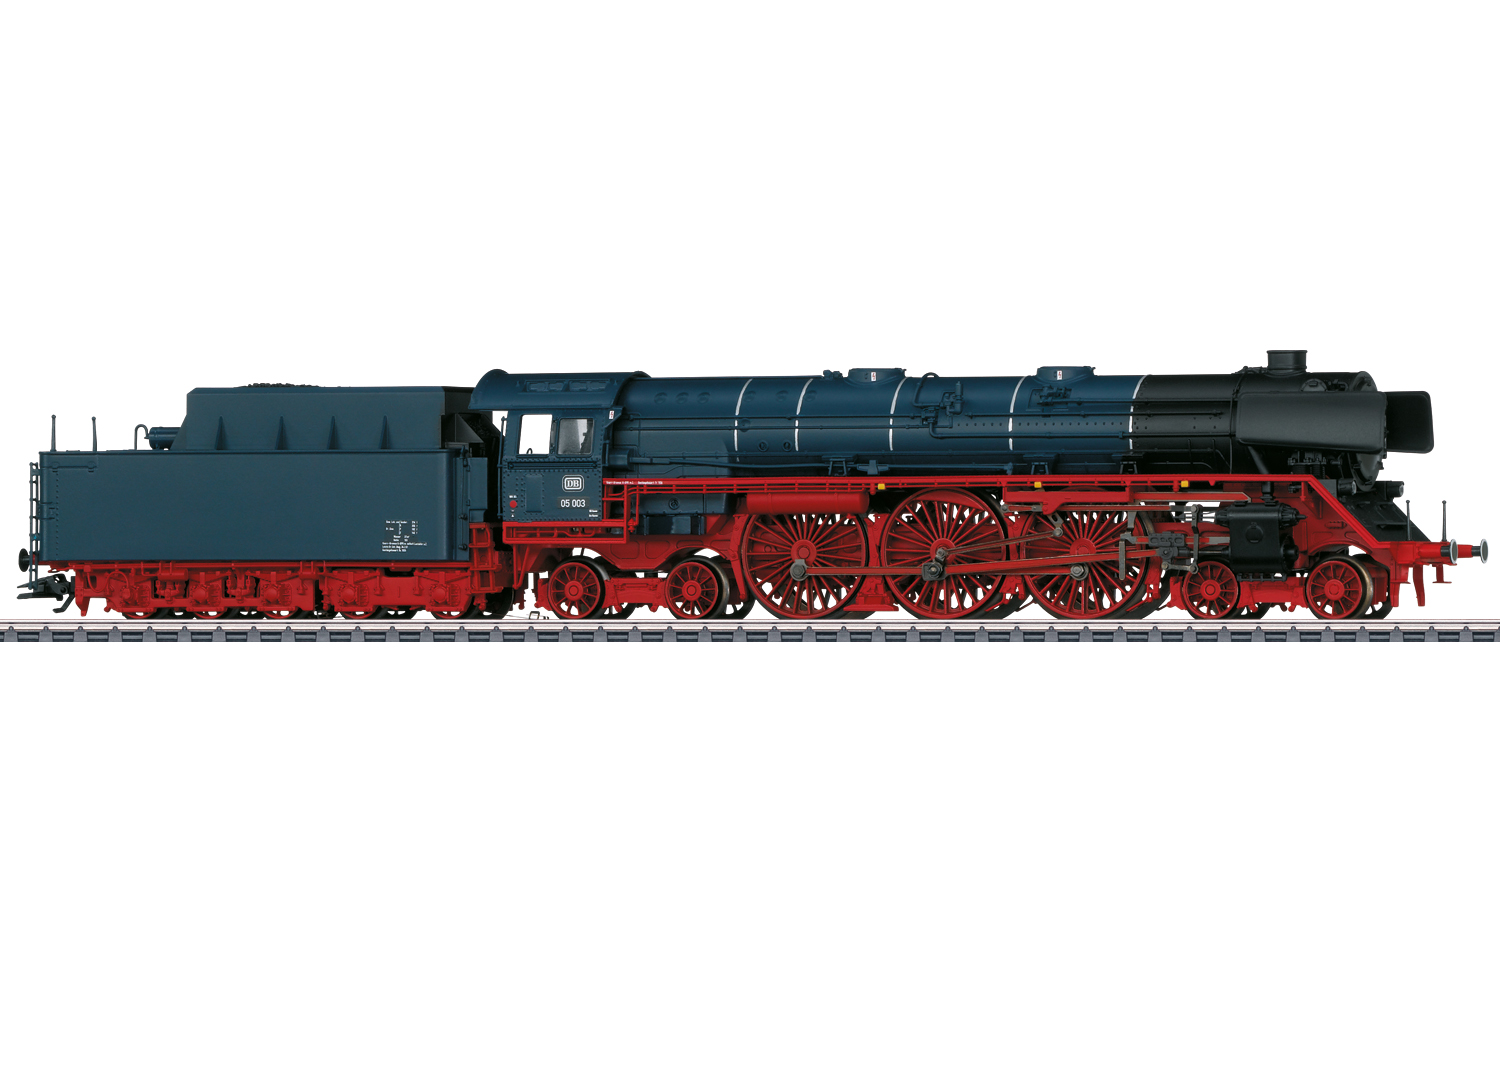 Express Steam Locomotive with a Tender.